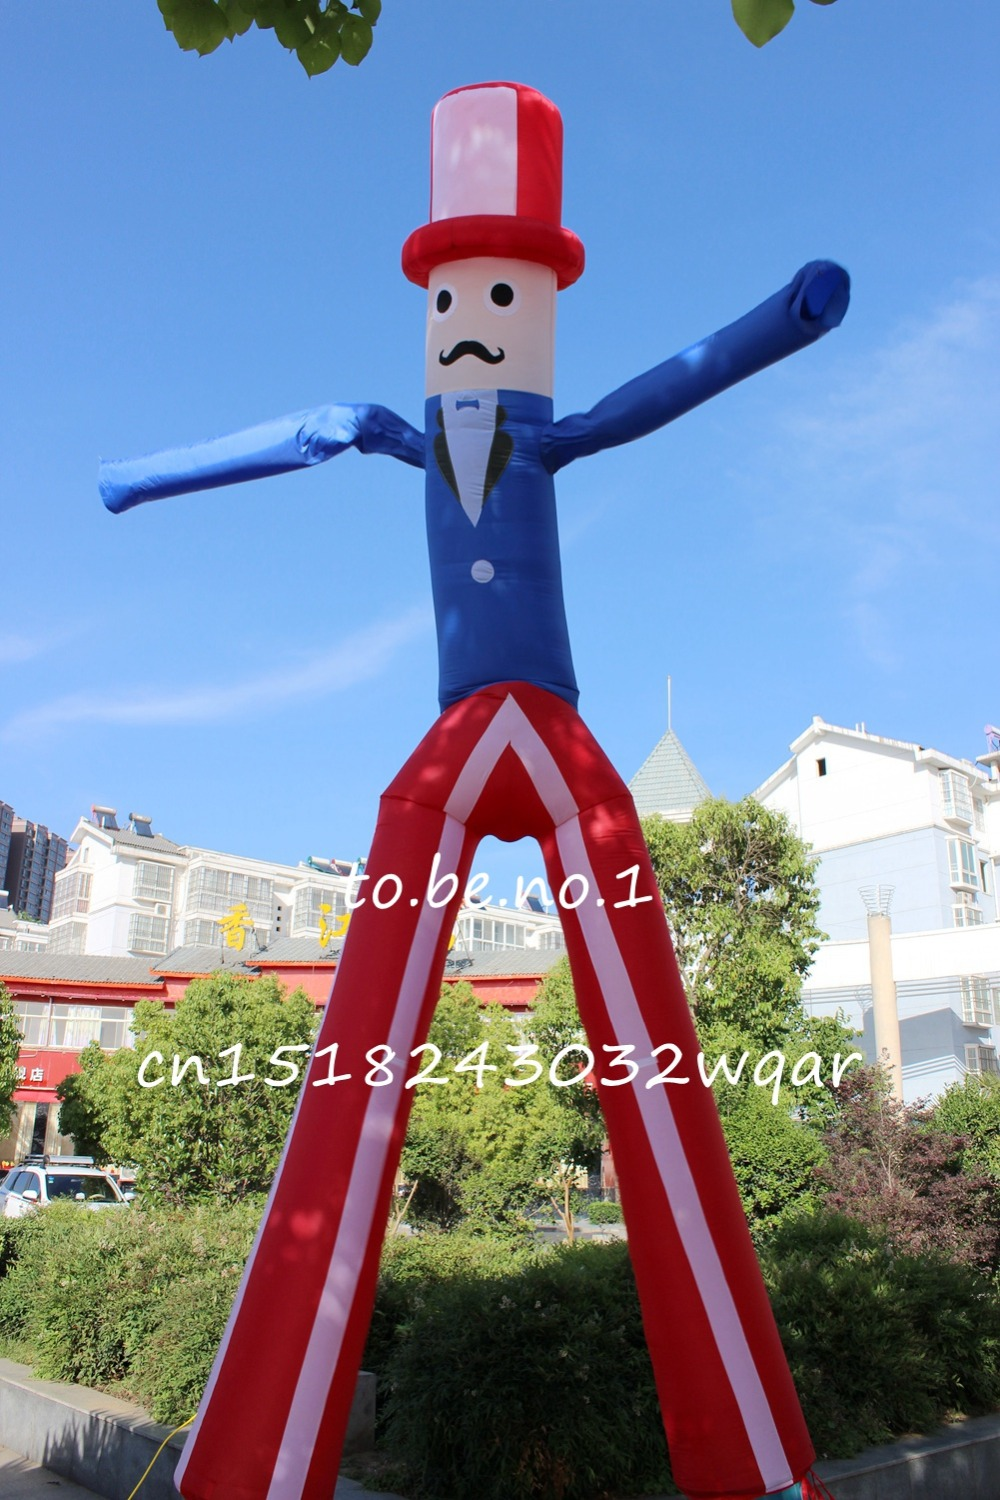 Sky Dancer Air Dancer Inflatable Toys 6M 20FT Inflatable Tube NO blower Inflatable Toys Shop ads sign S1006 цена и фото